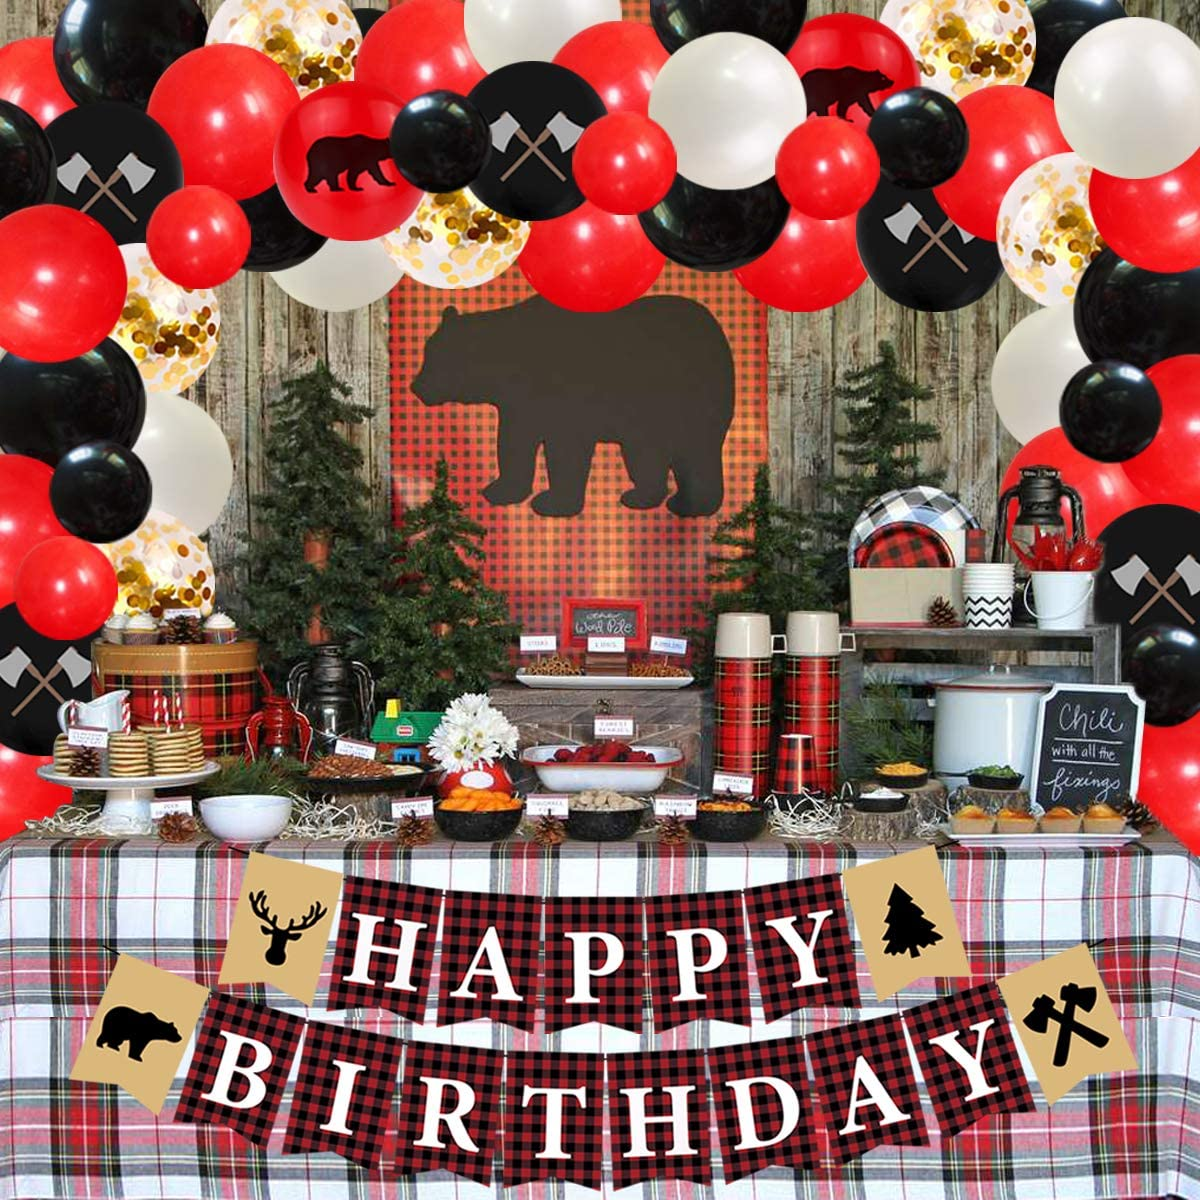 Camping Bear Wild One Birthday Lumberjack Party Decorations Balloon Garland Arch Kit Buffalo Plaid Birthday Party Supplies Banner for Boys Girls 1st 2nd 3rd Birthday